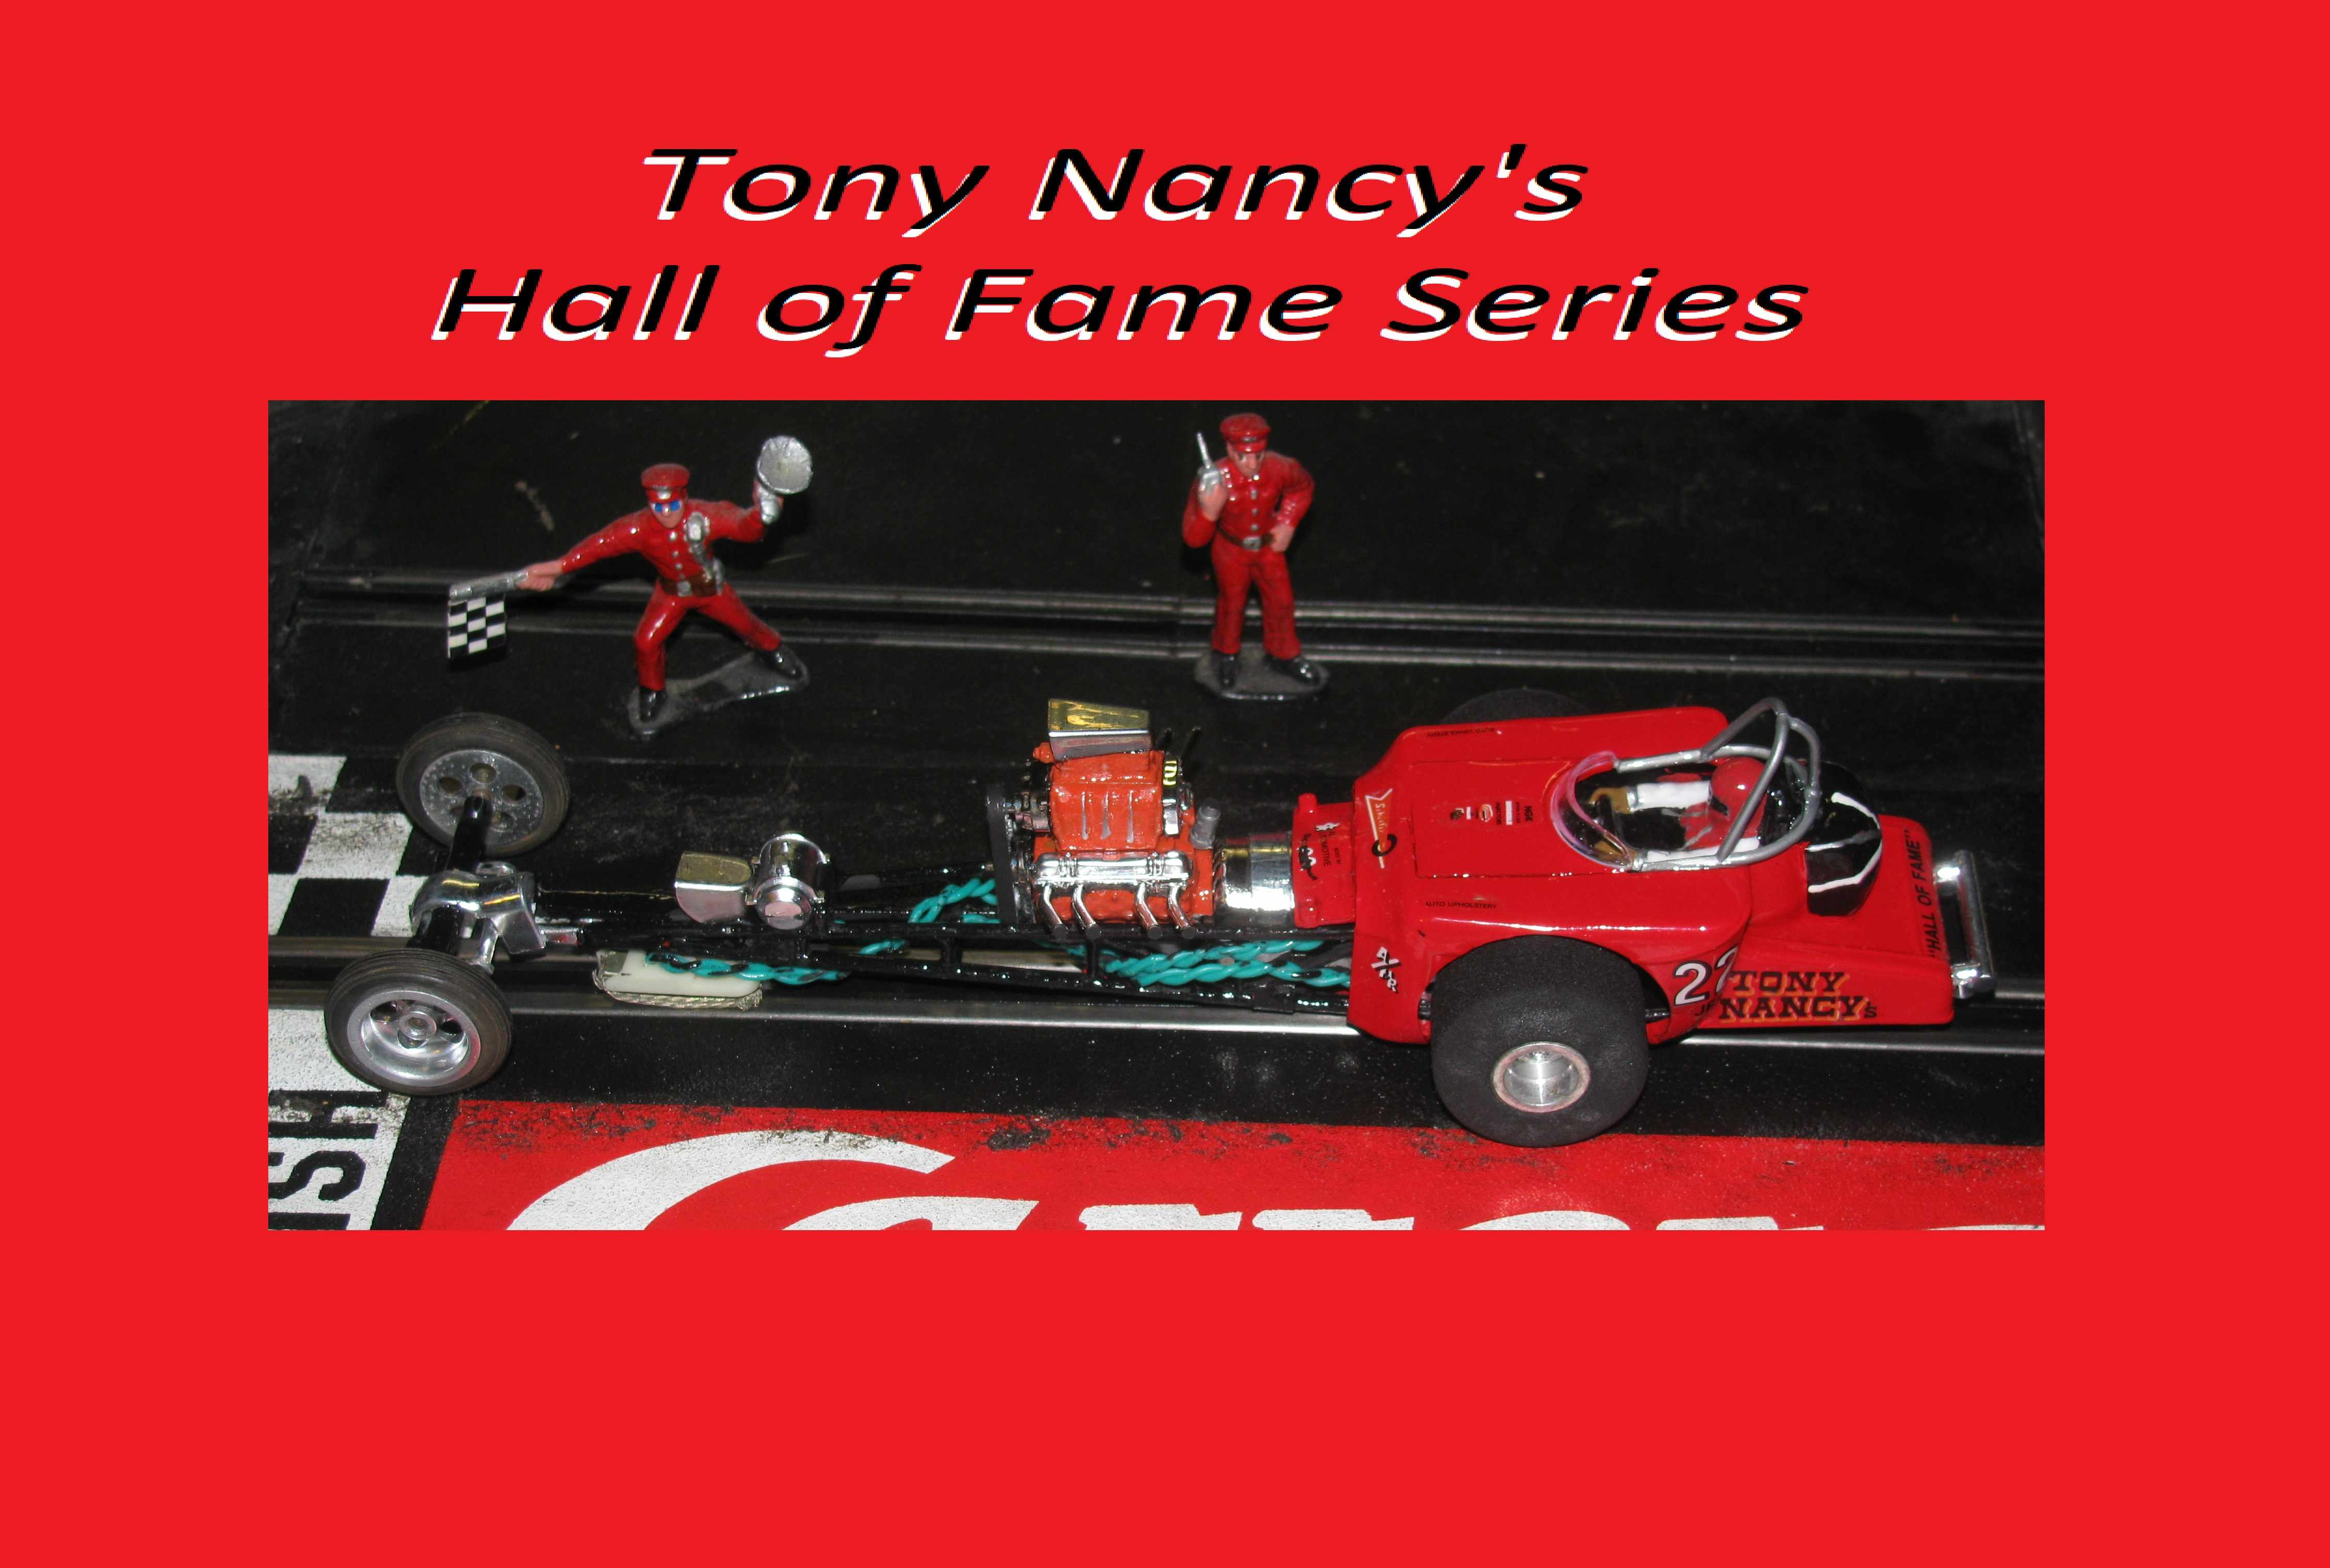 * Winter is coming SALE * Vintage Revell Tony Nancy's Hall of Fame 22JR Dragster Slot Car 1/32-1/24 Scale